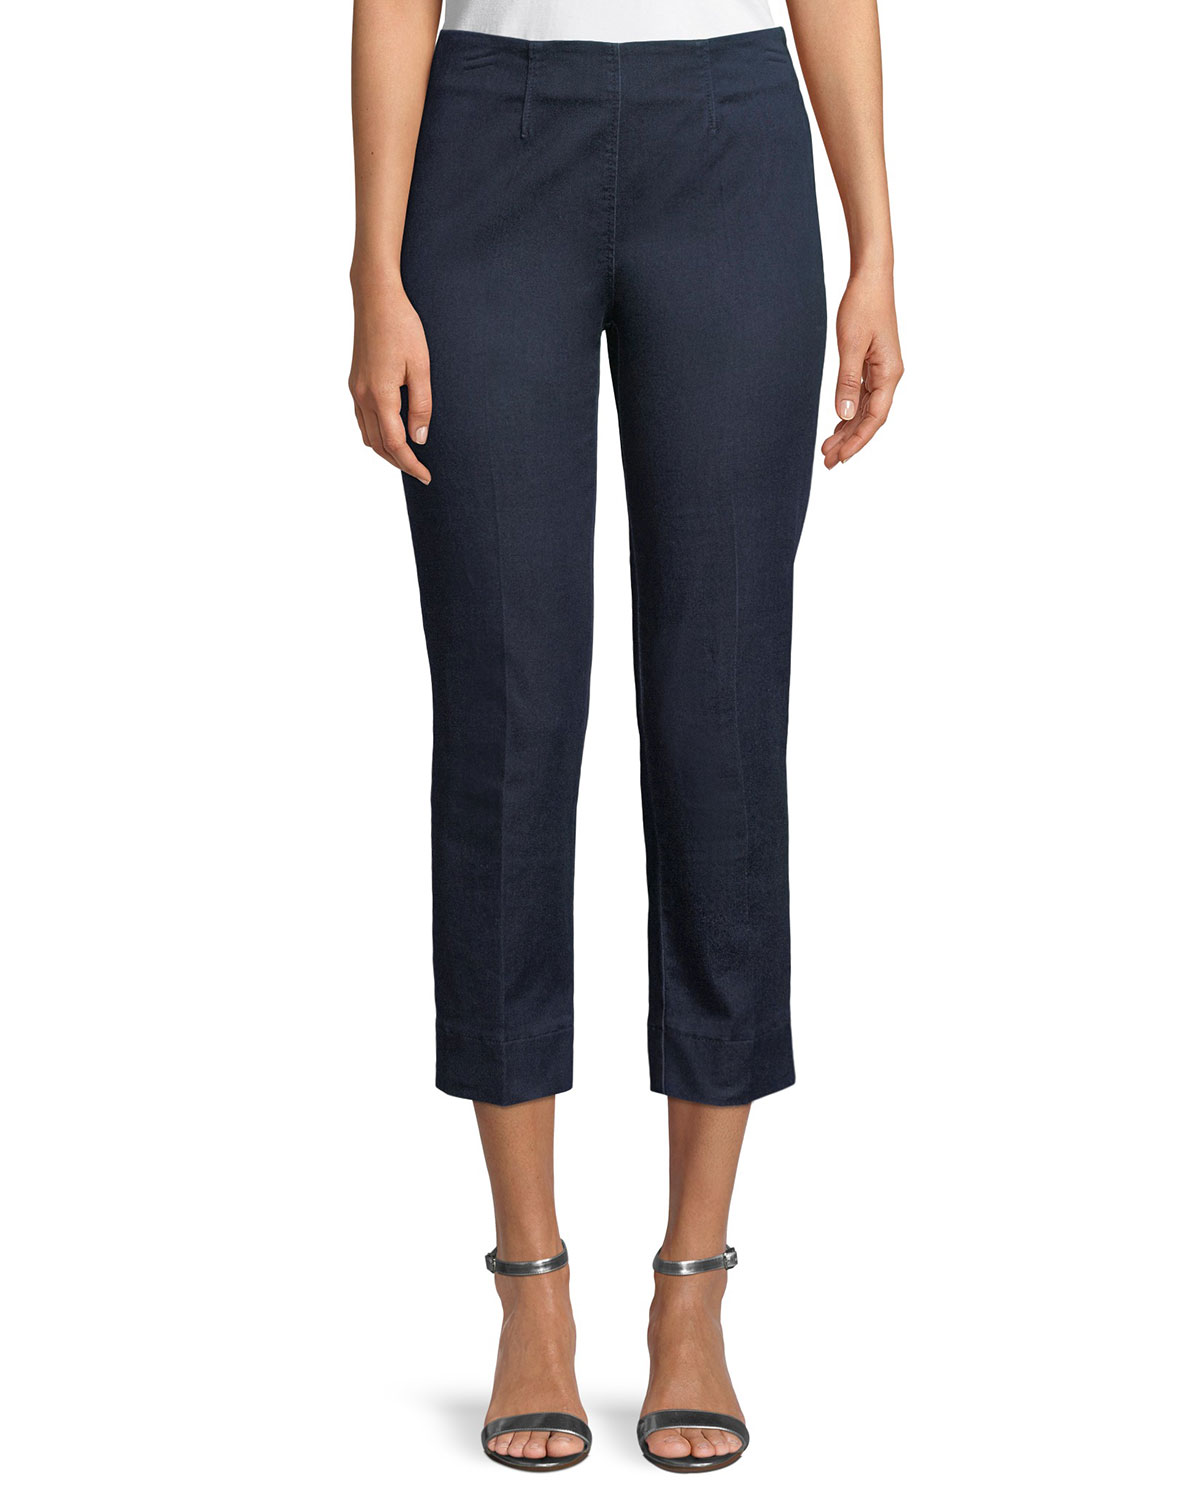 Audrey Slim Straight-Leg Denim Capri Pants